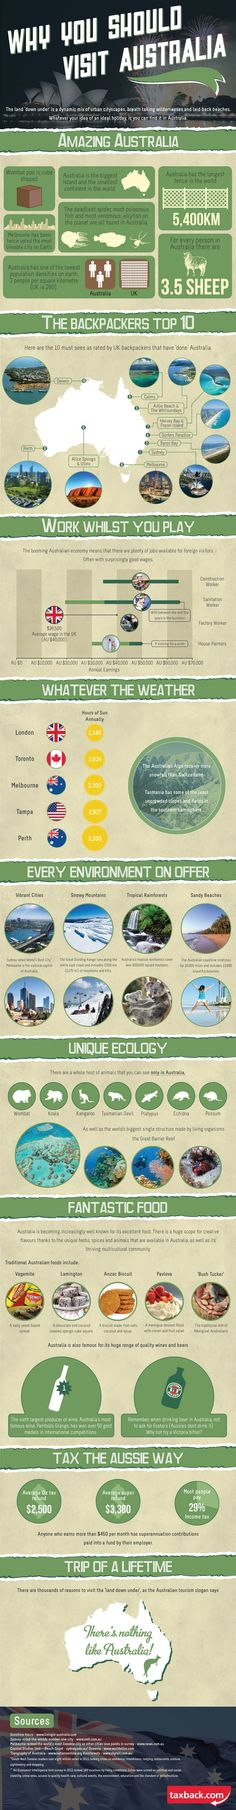 Infographic: Why You Should Visit Australia From coral reefs to rain forests, deserts to cities, has something for everyone. Stay in 5 star luxury hotels, or go backpacking & much Places To Travel, Places To See, Travel Destinations, Travel Trip, Visit Australia, Australia Travel, Space Australia, Australia 2018, Melbourne Australia